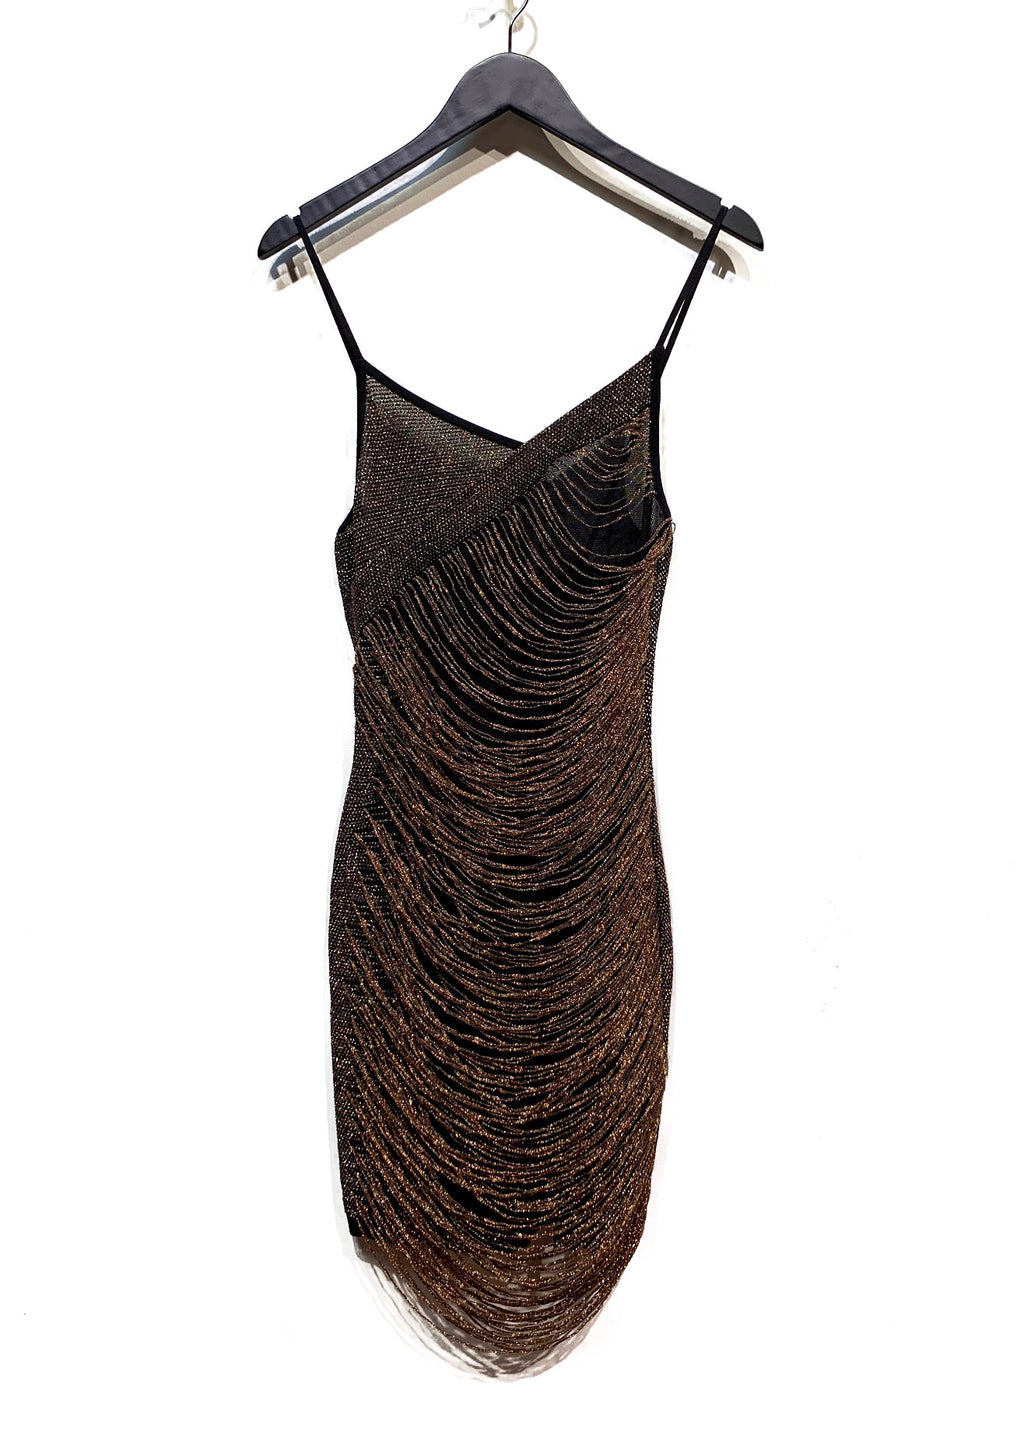 Balmain Copper Metallic Thread Fringed Mini Dress